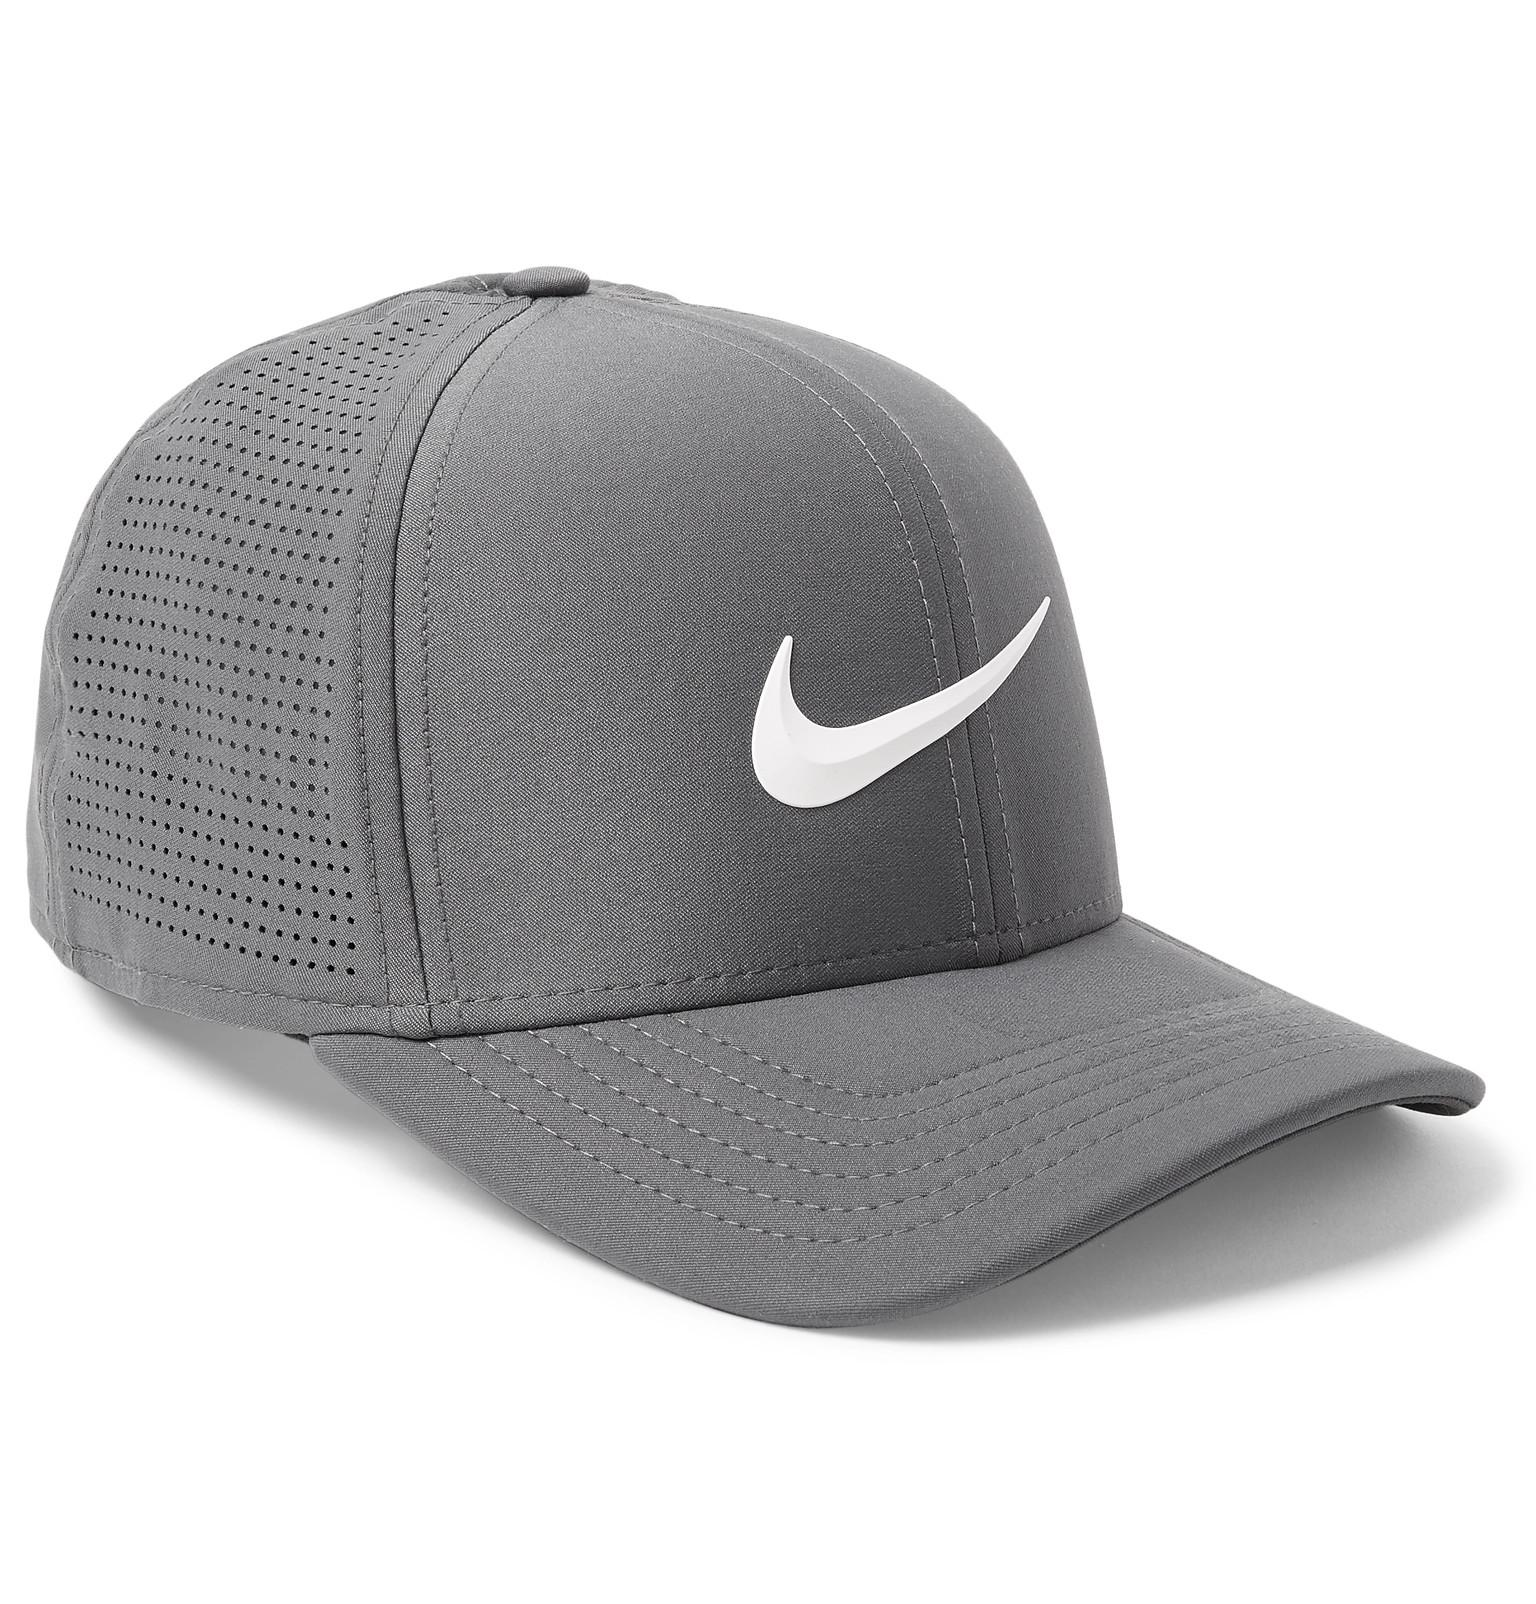 Nike Aerobill Classic 99 Dri-fit Golf Cap in Gray for Men - Lyst 812ebb2ab3f